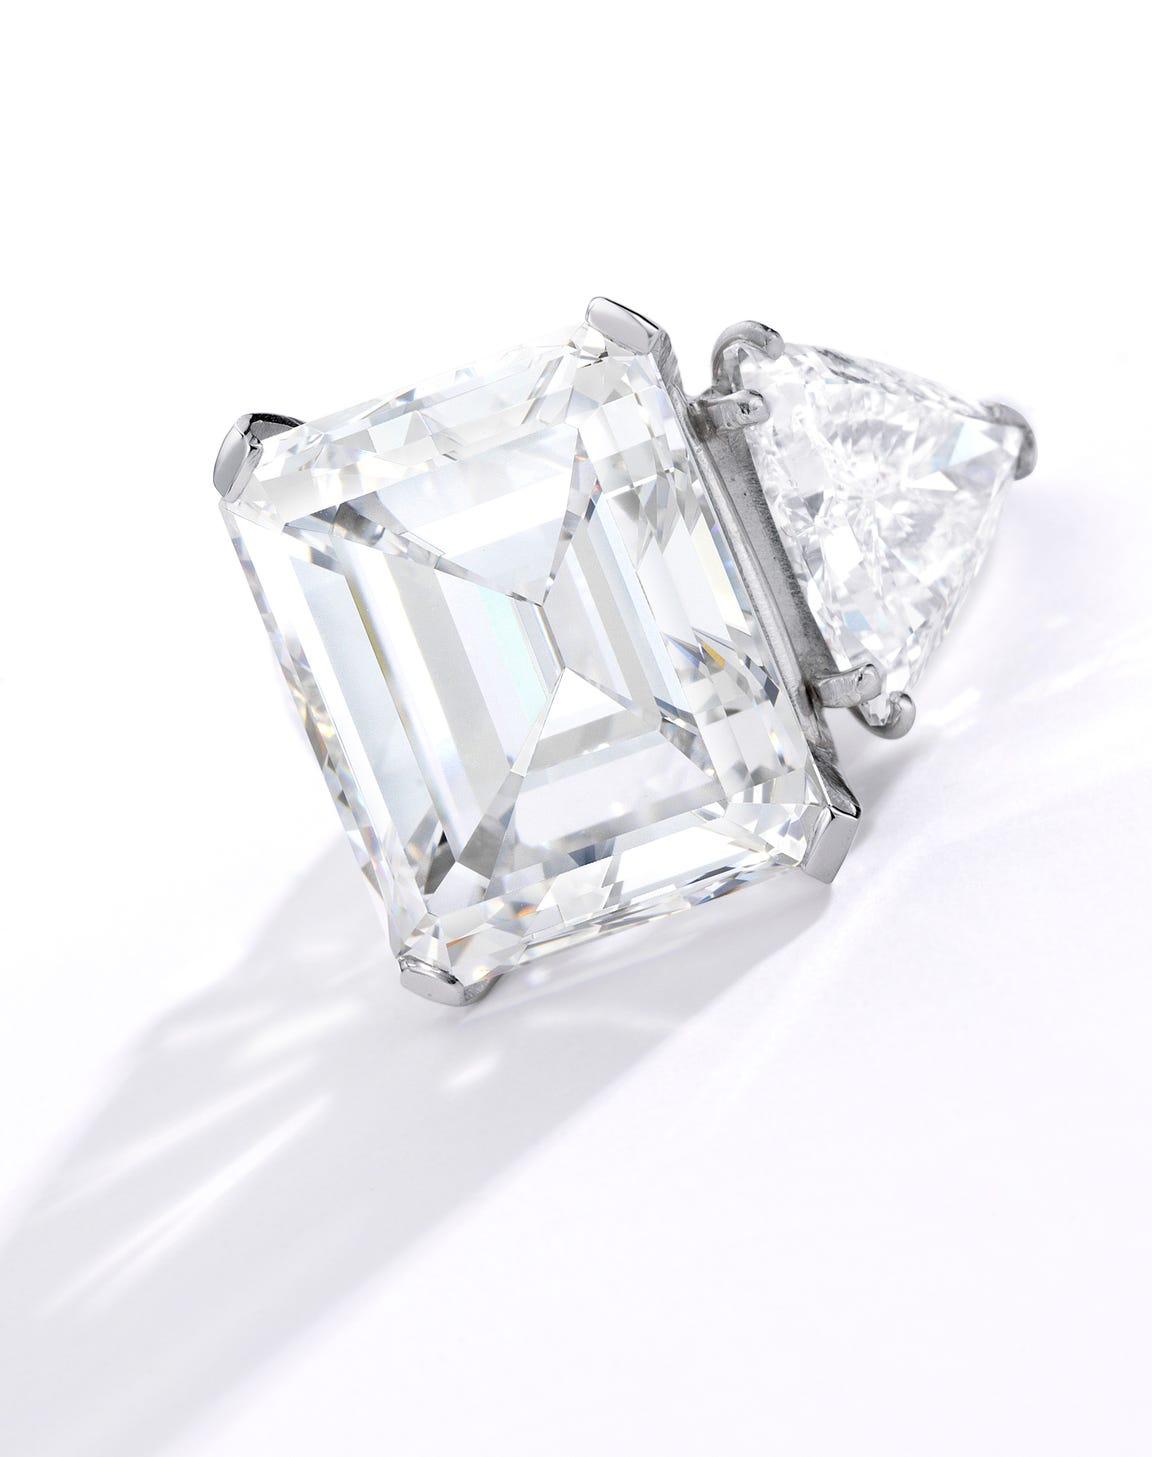 Barbara Sinatra diamond ring, weighing 20.60 carats